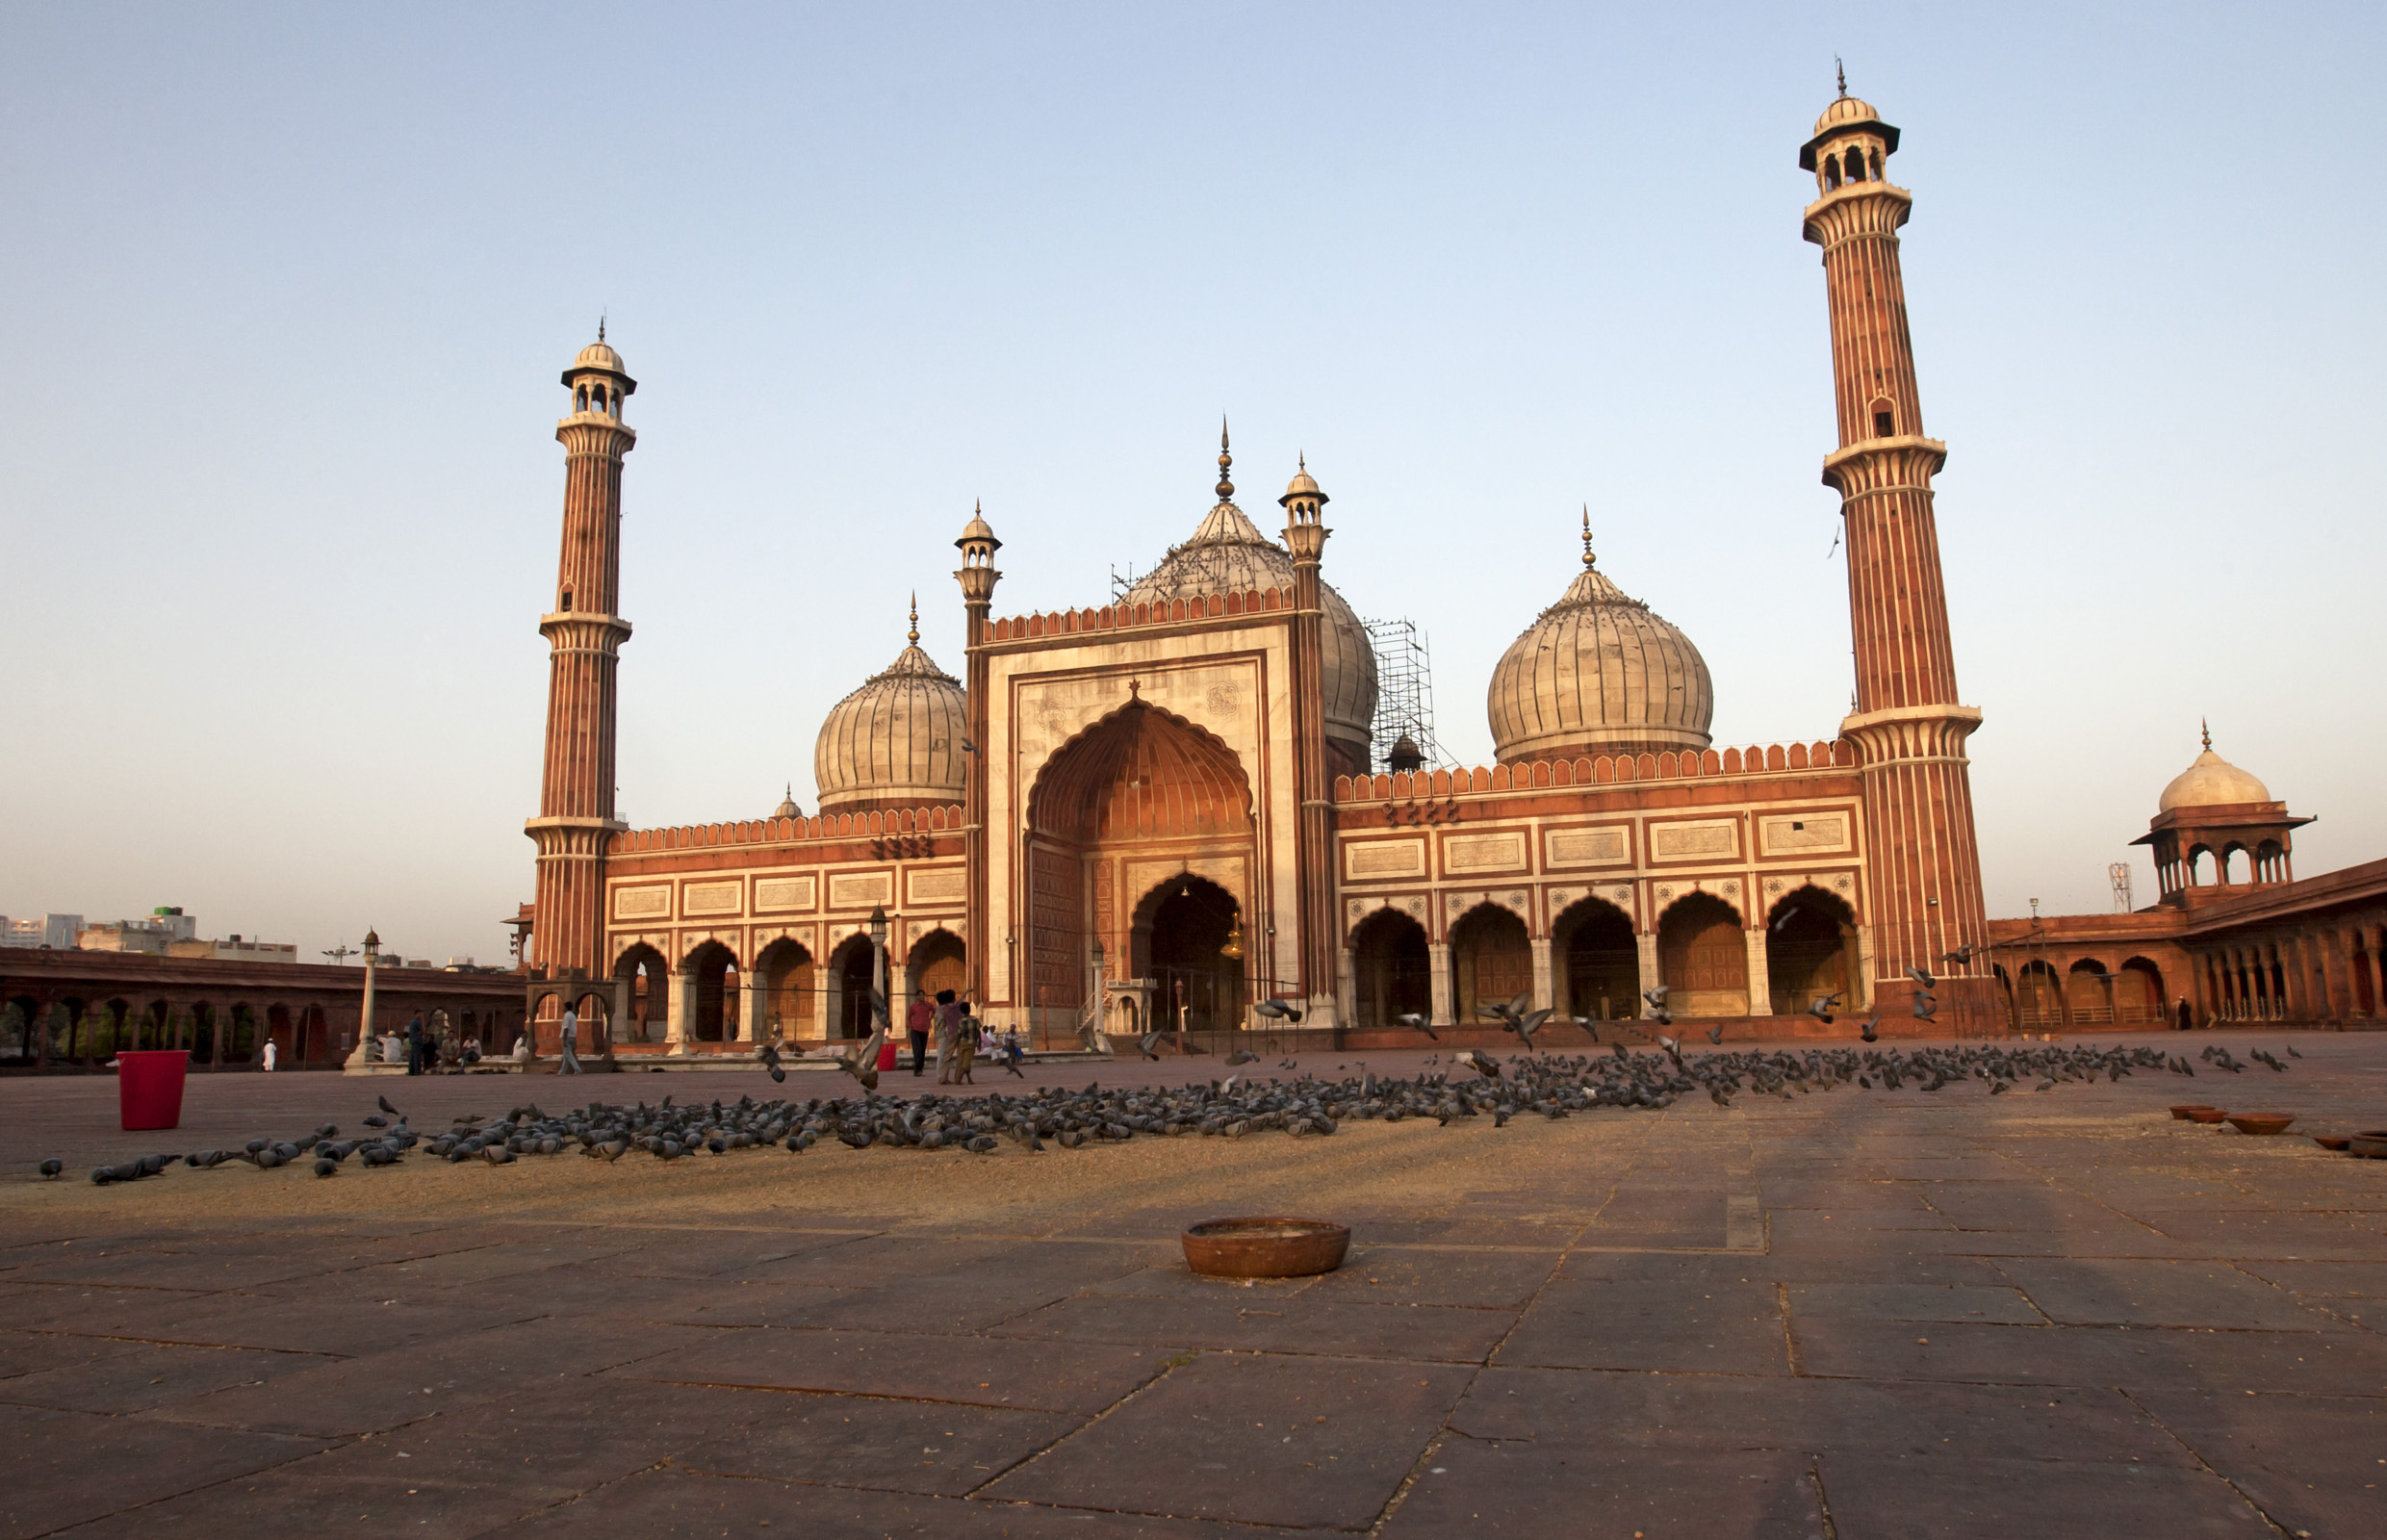 Jama Masjid Mosque, Delhi, India